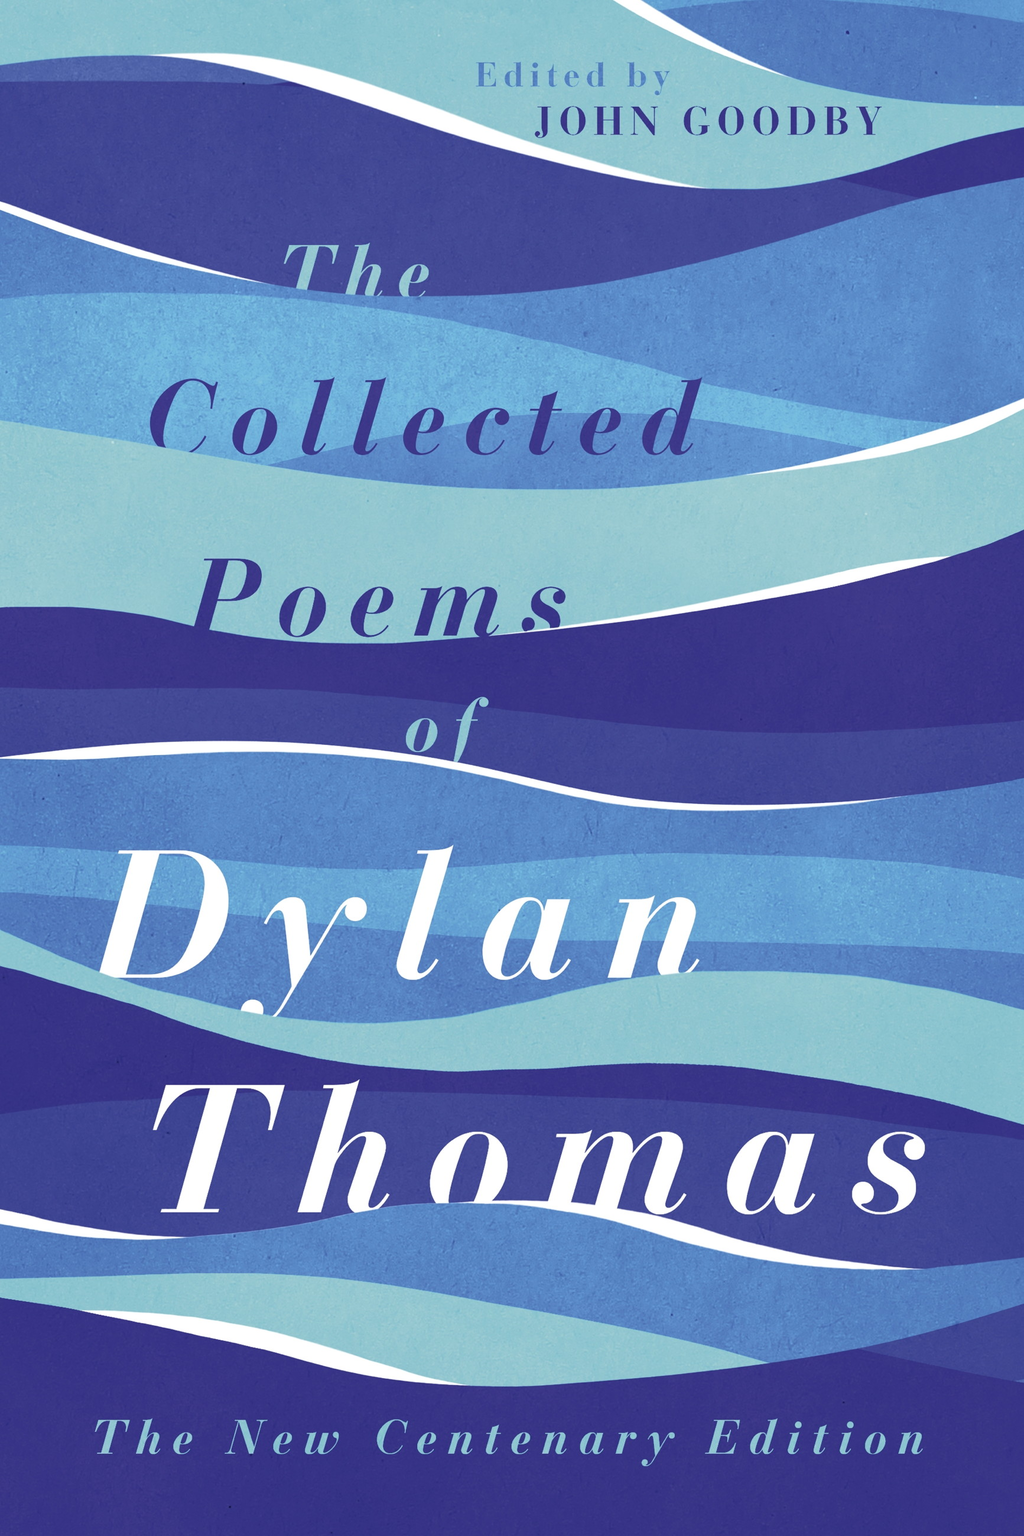 The Collected Poems of Dylan Thomas The New Centenary Edition